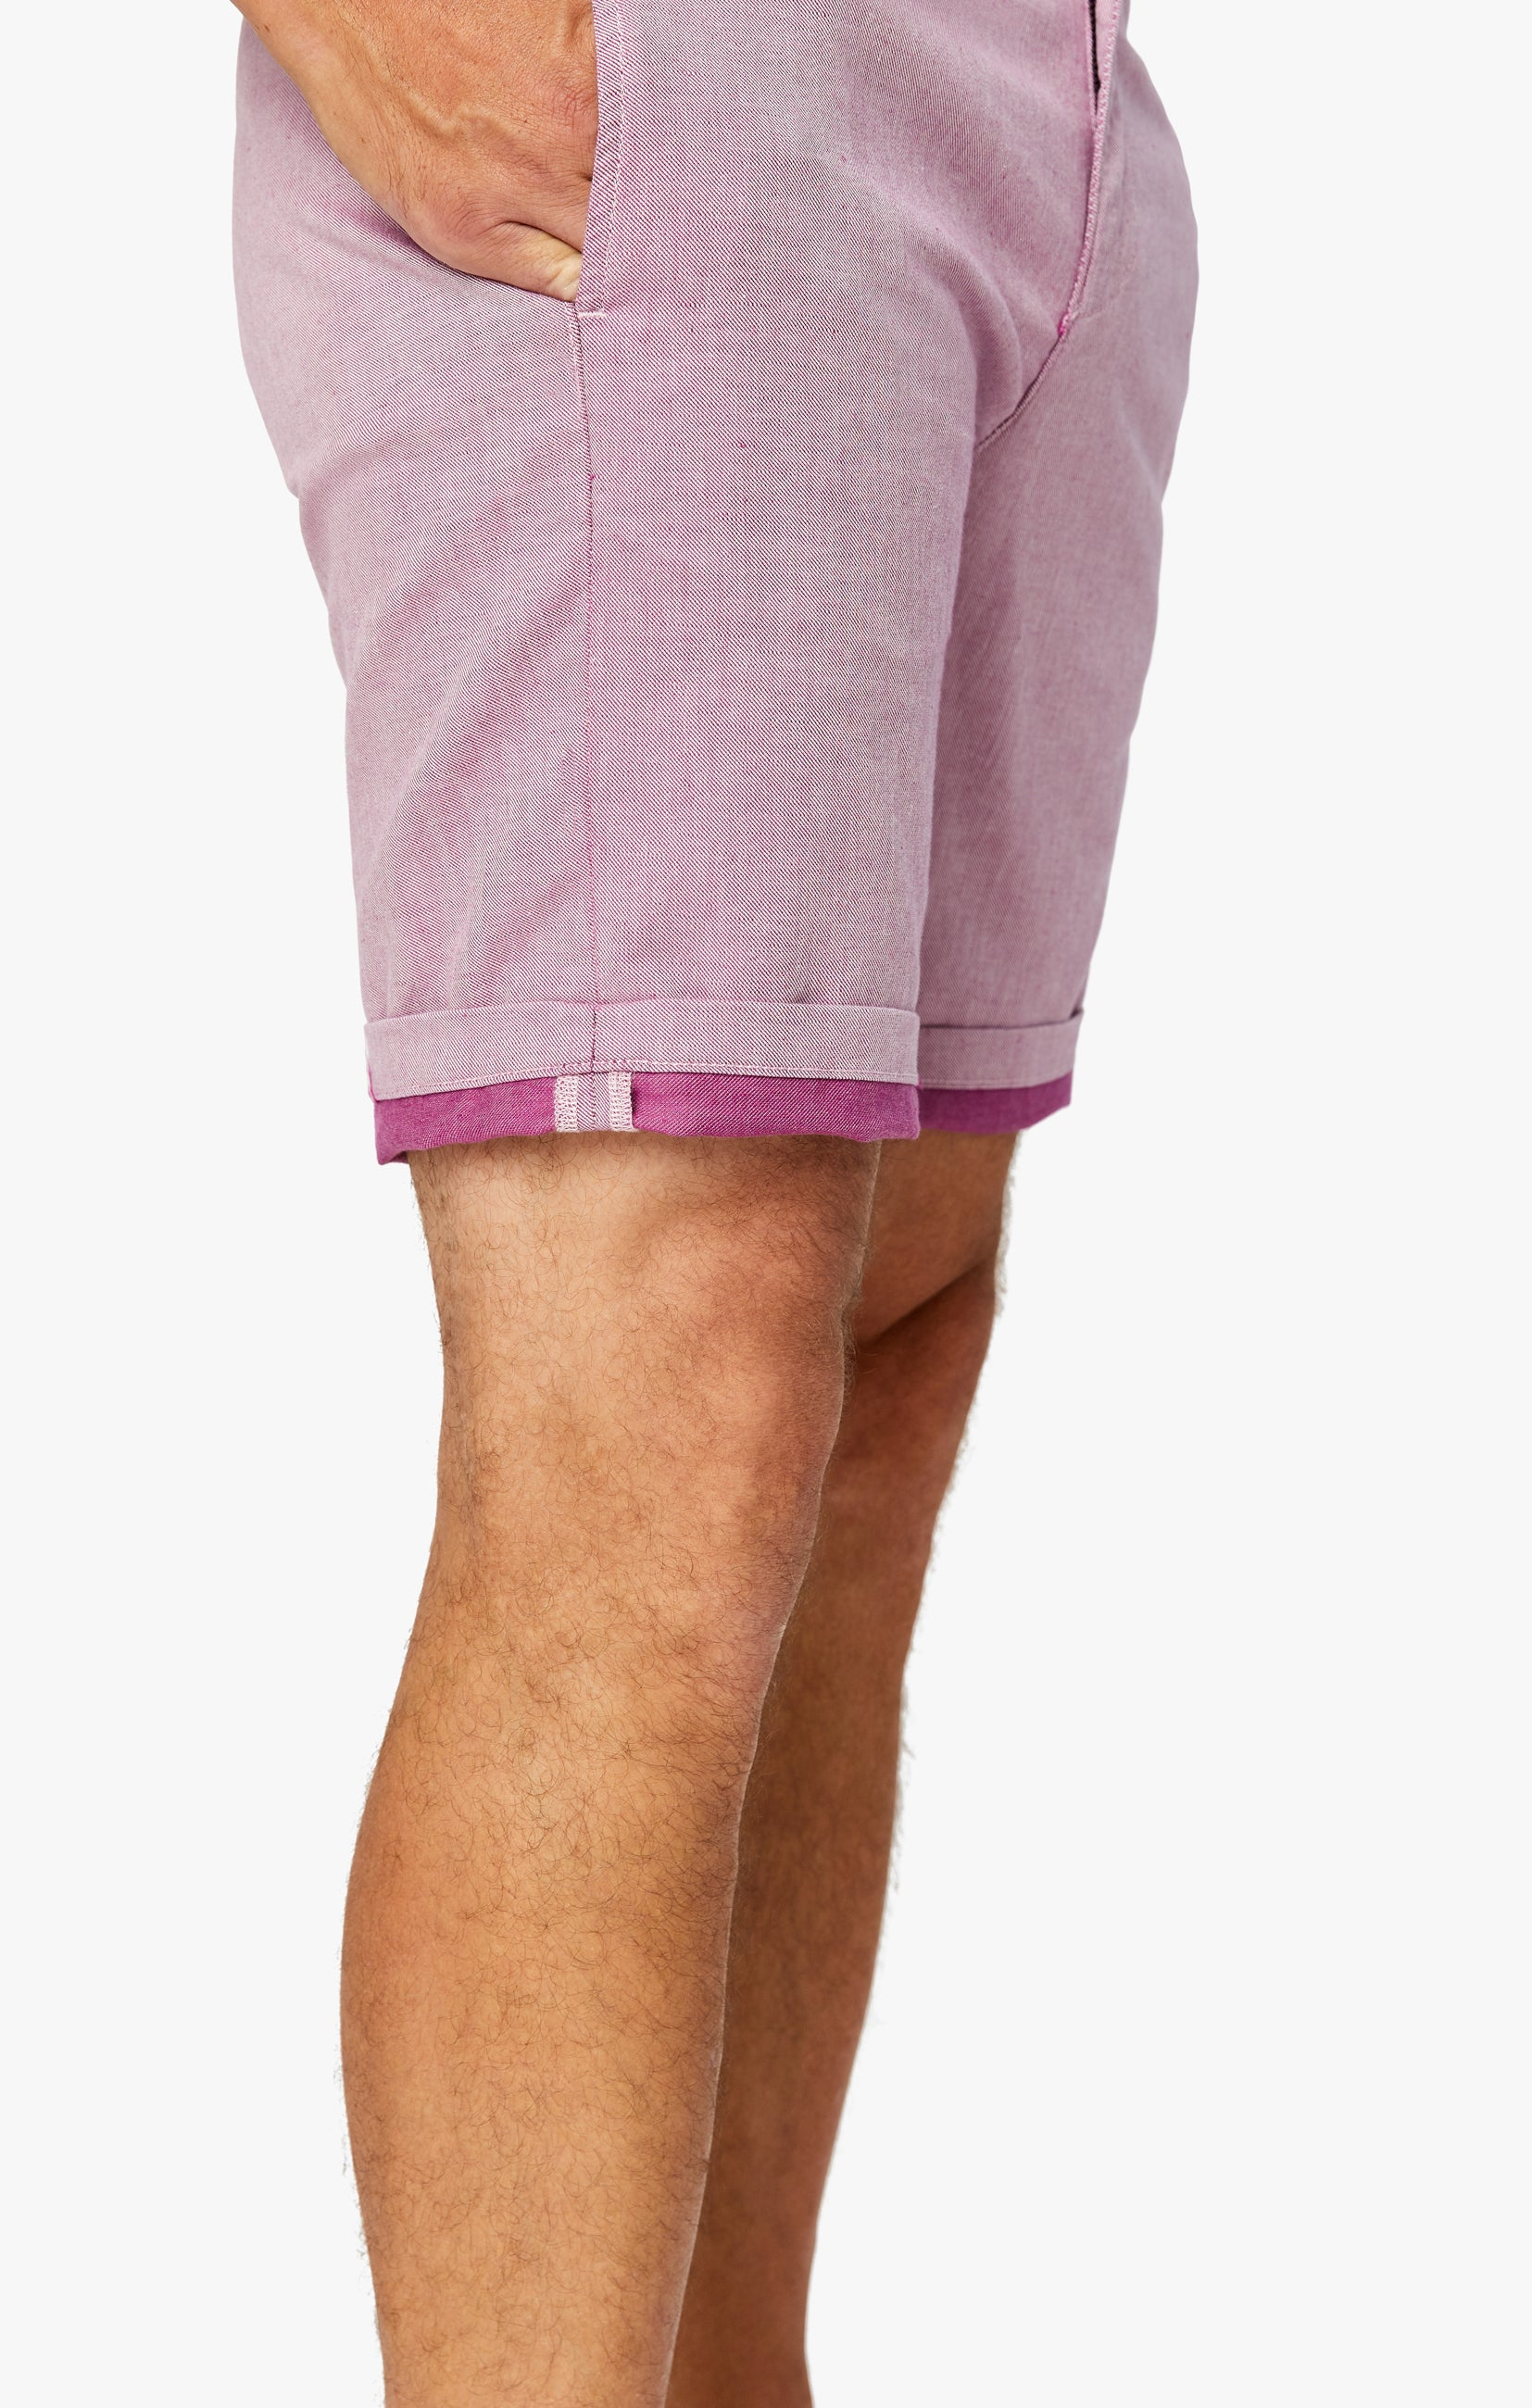 Nevada Shorts in Berry Luxe Reversed Image 7